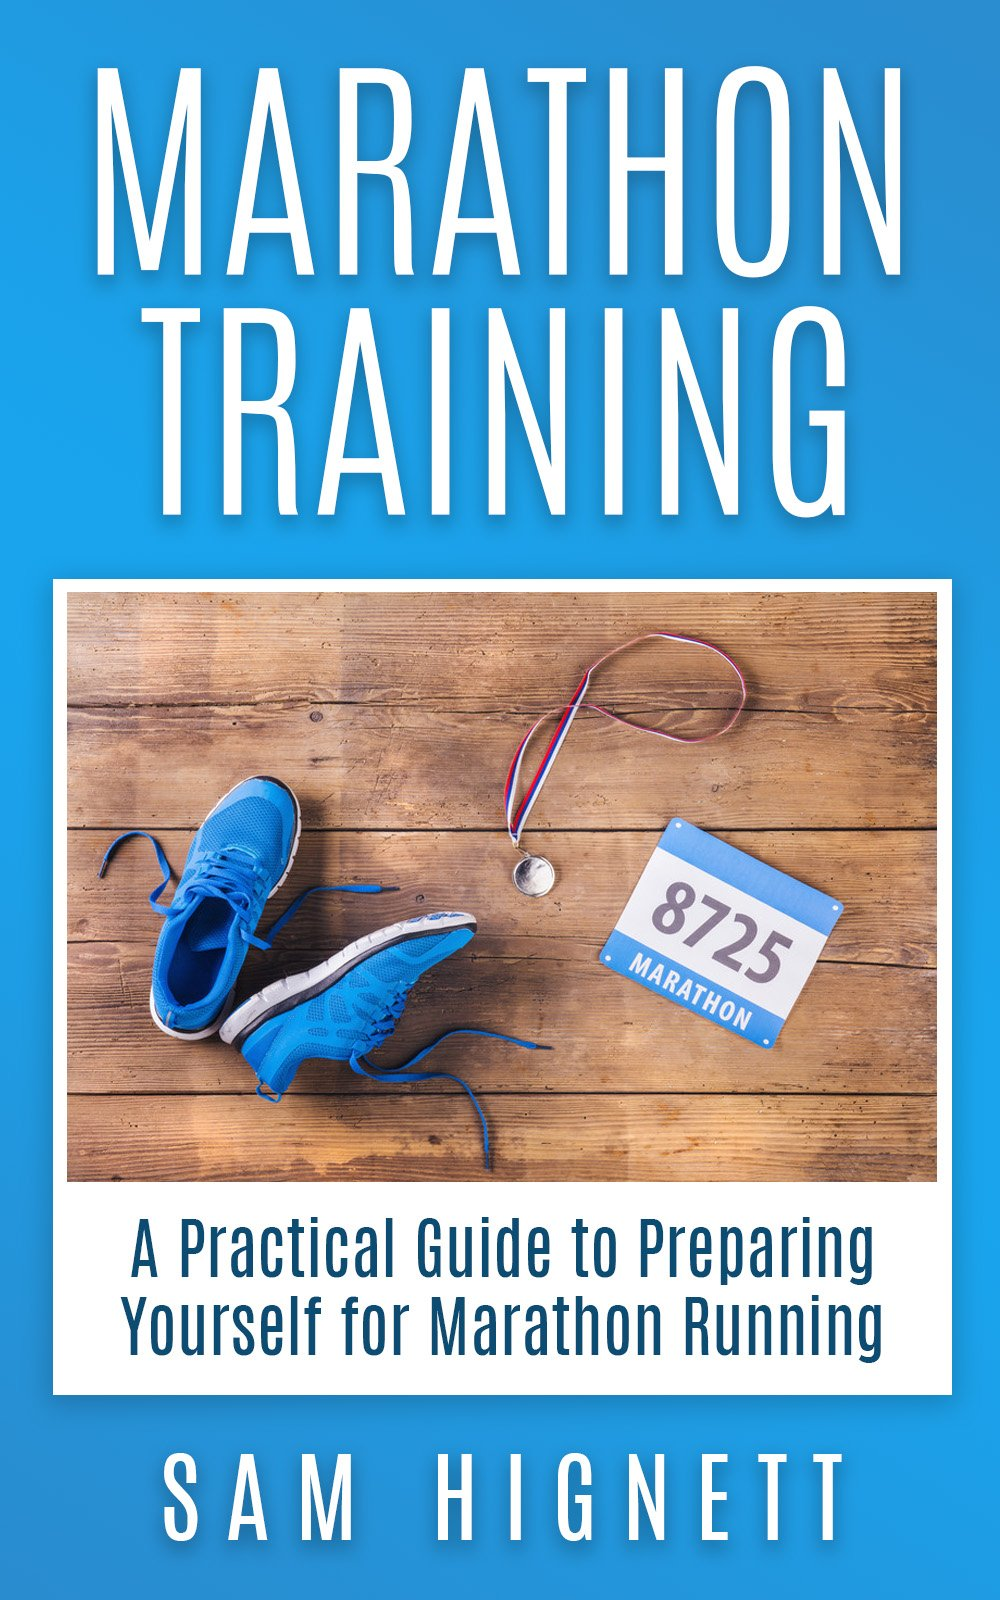 Image OfMarathon Training: A Practical Guide To Preparing Yourself For Marathon Running (Marathon Training, Tips And Advice, Runni...